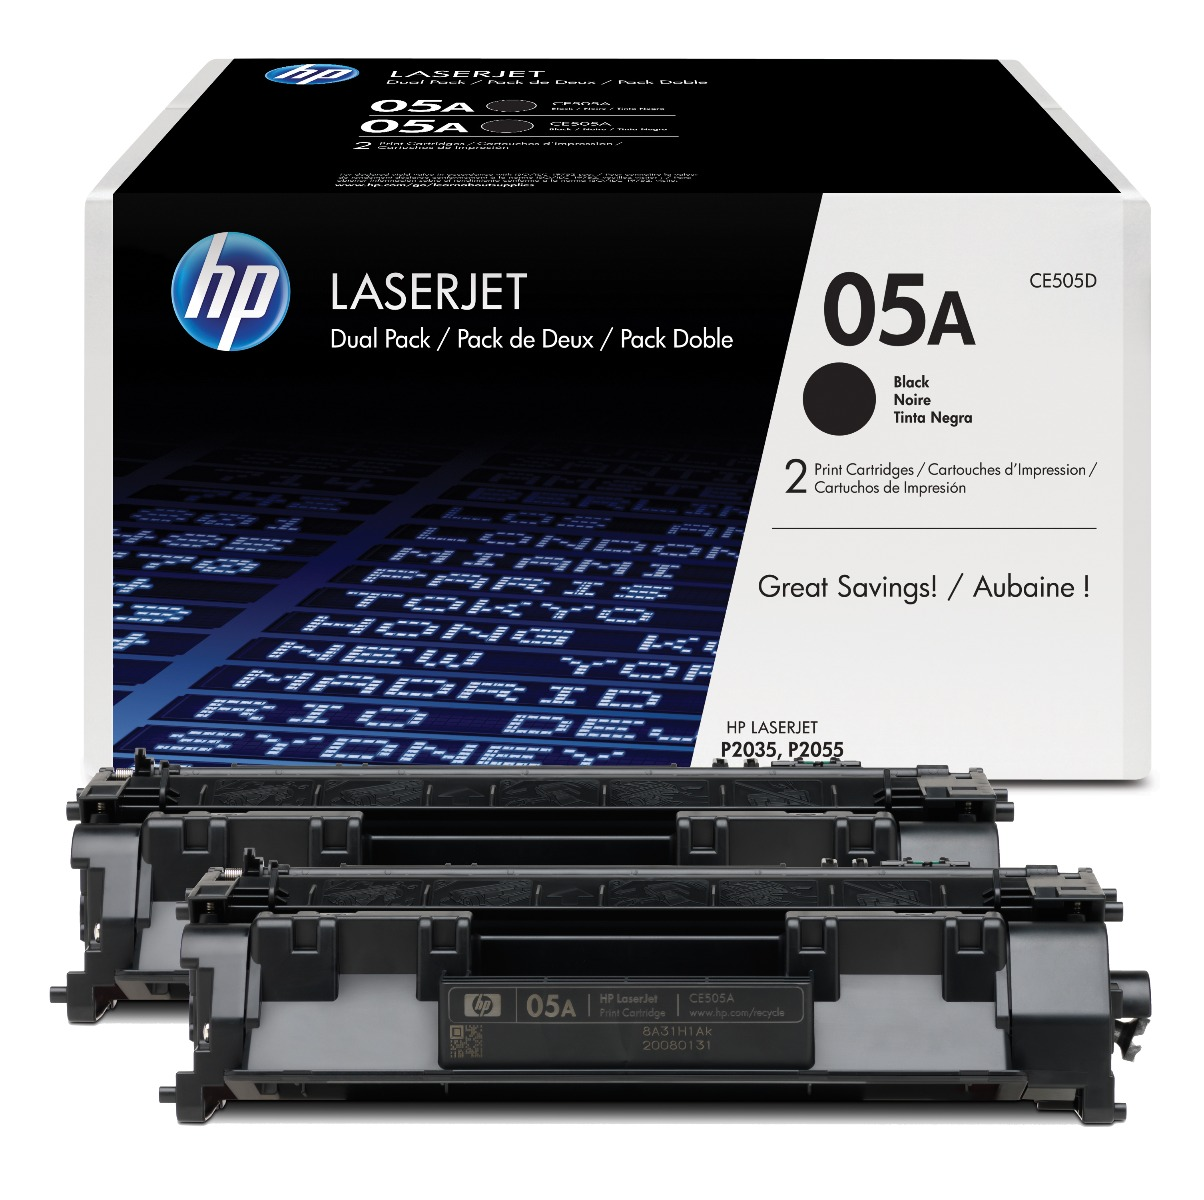 Genuine Black HP 05A Toner Cartridge Twin Pack - (HP CE505D)